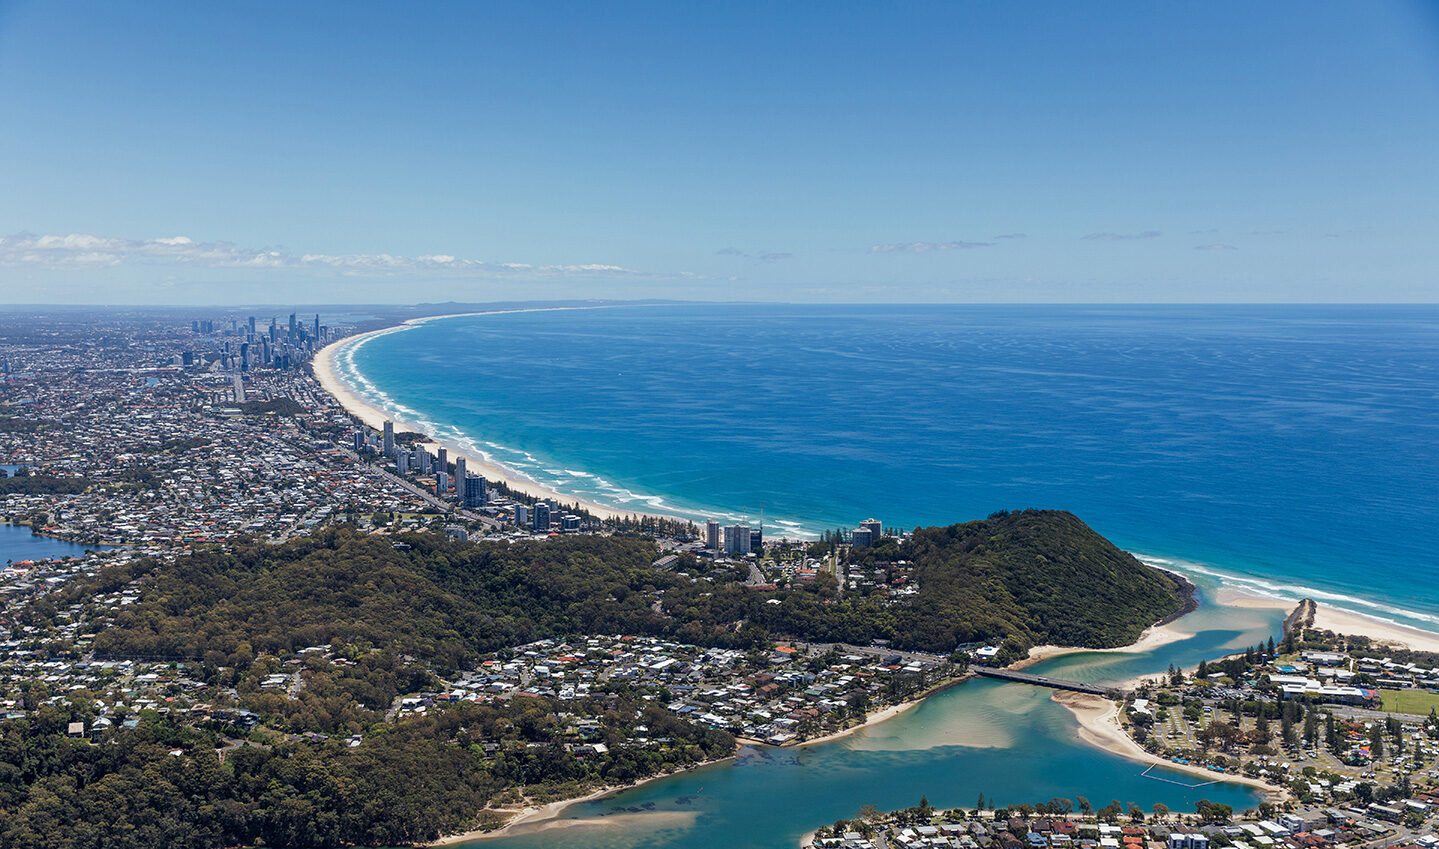 arial view of the Gold Coast with the ocean and coastline visible